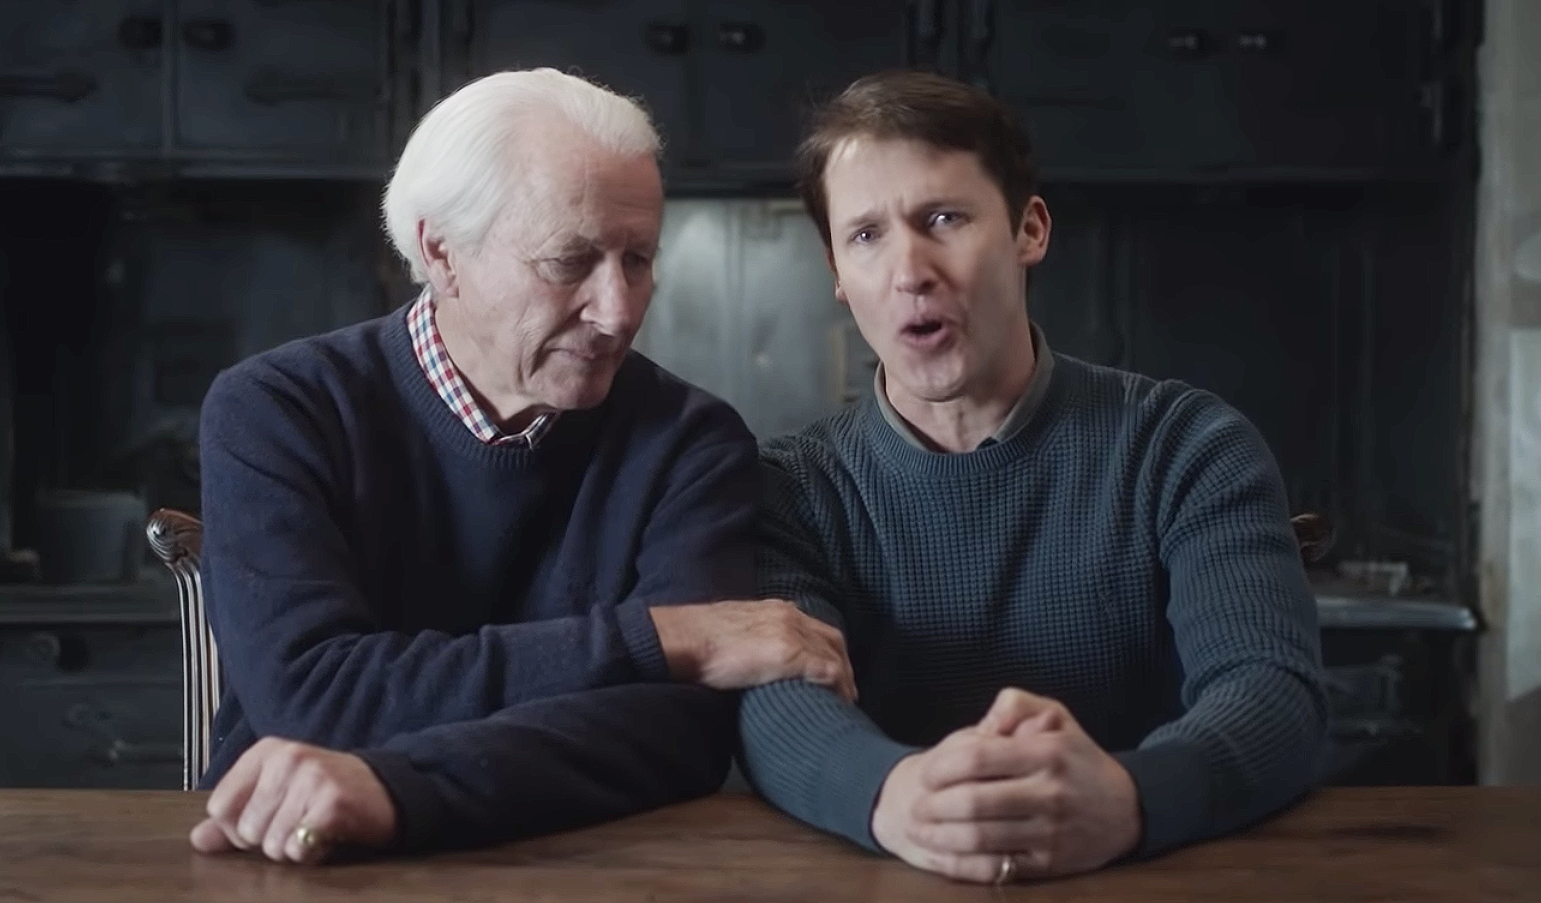 James Blunt breaks down in powerful music video starring dying father: 'We're just two grown men saying goodbye'